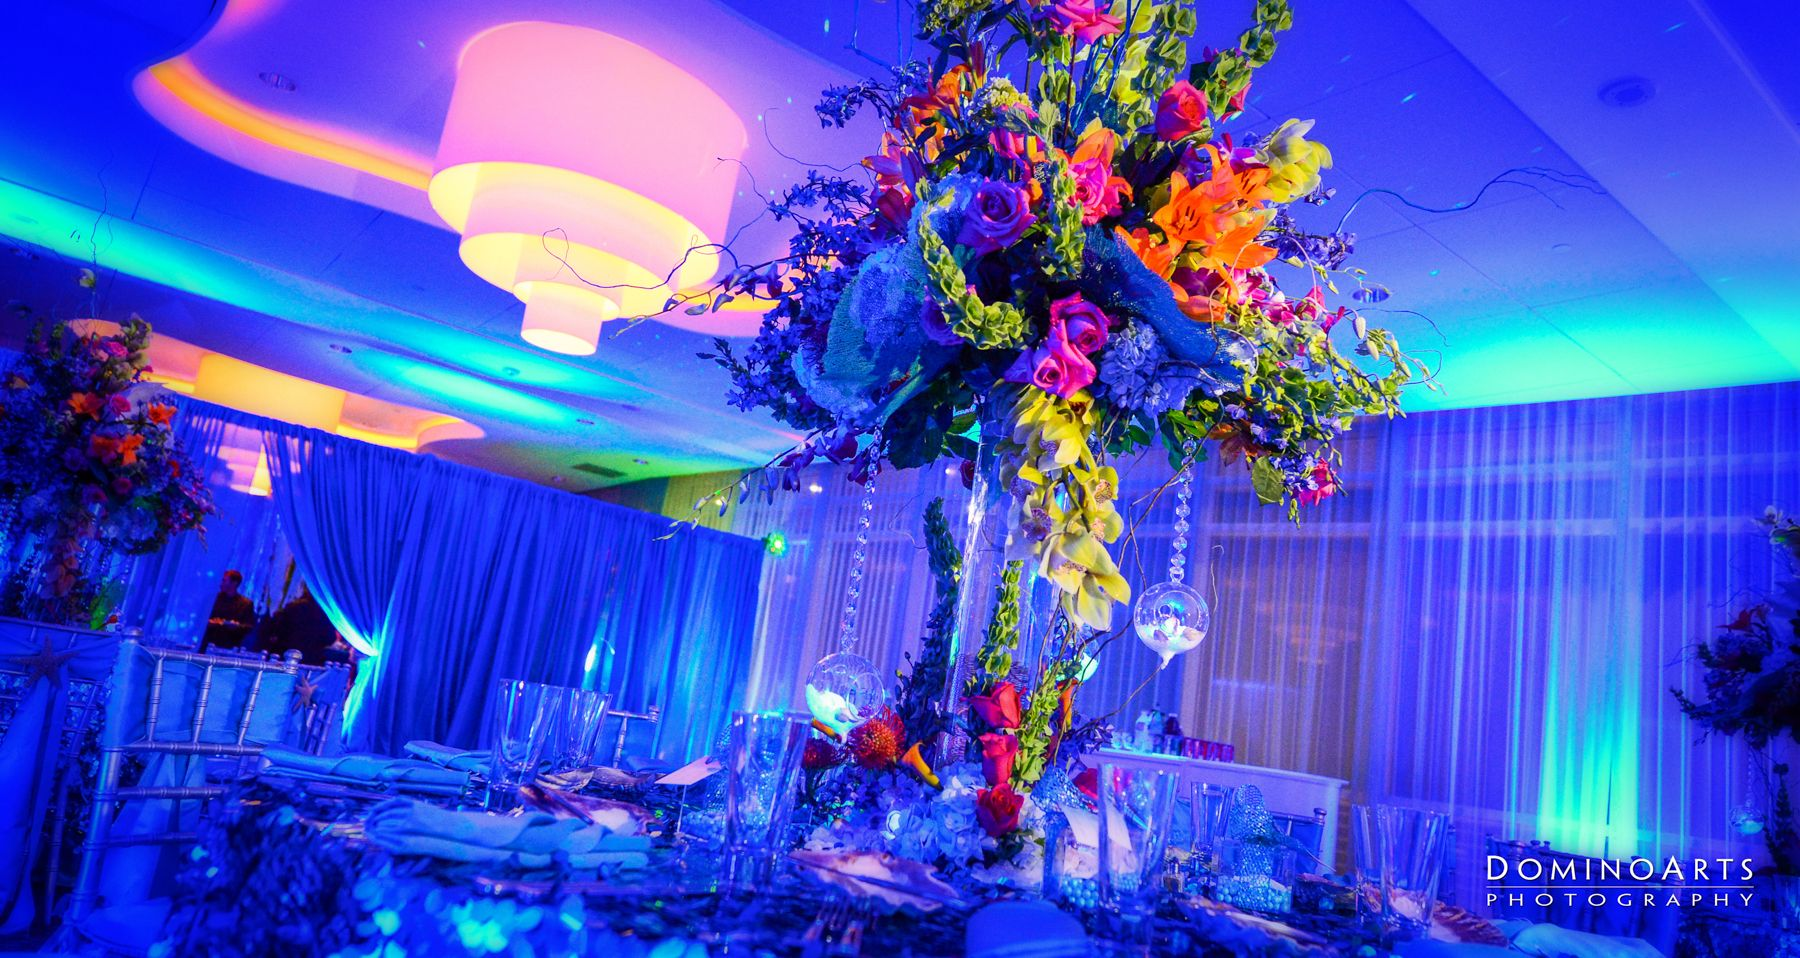 Miami Bat Mitzvah Danielle Guenther S Under The Sea Themed Party Domino Arts